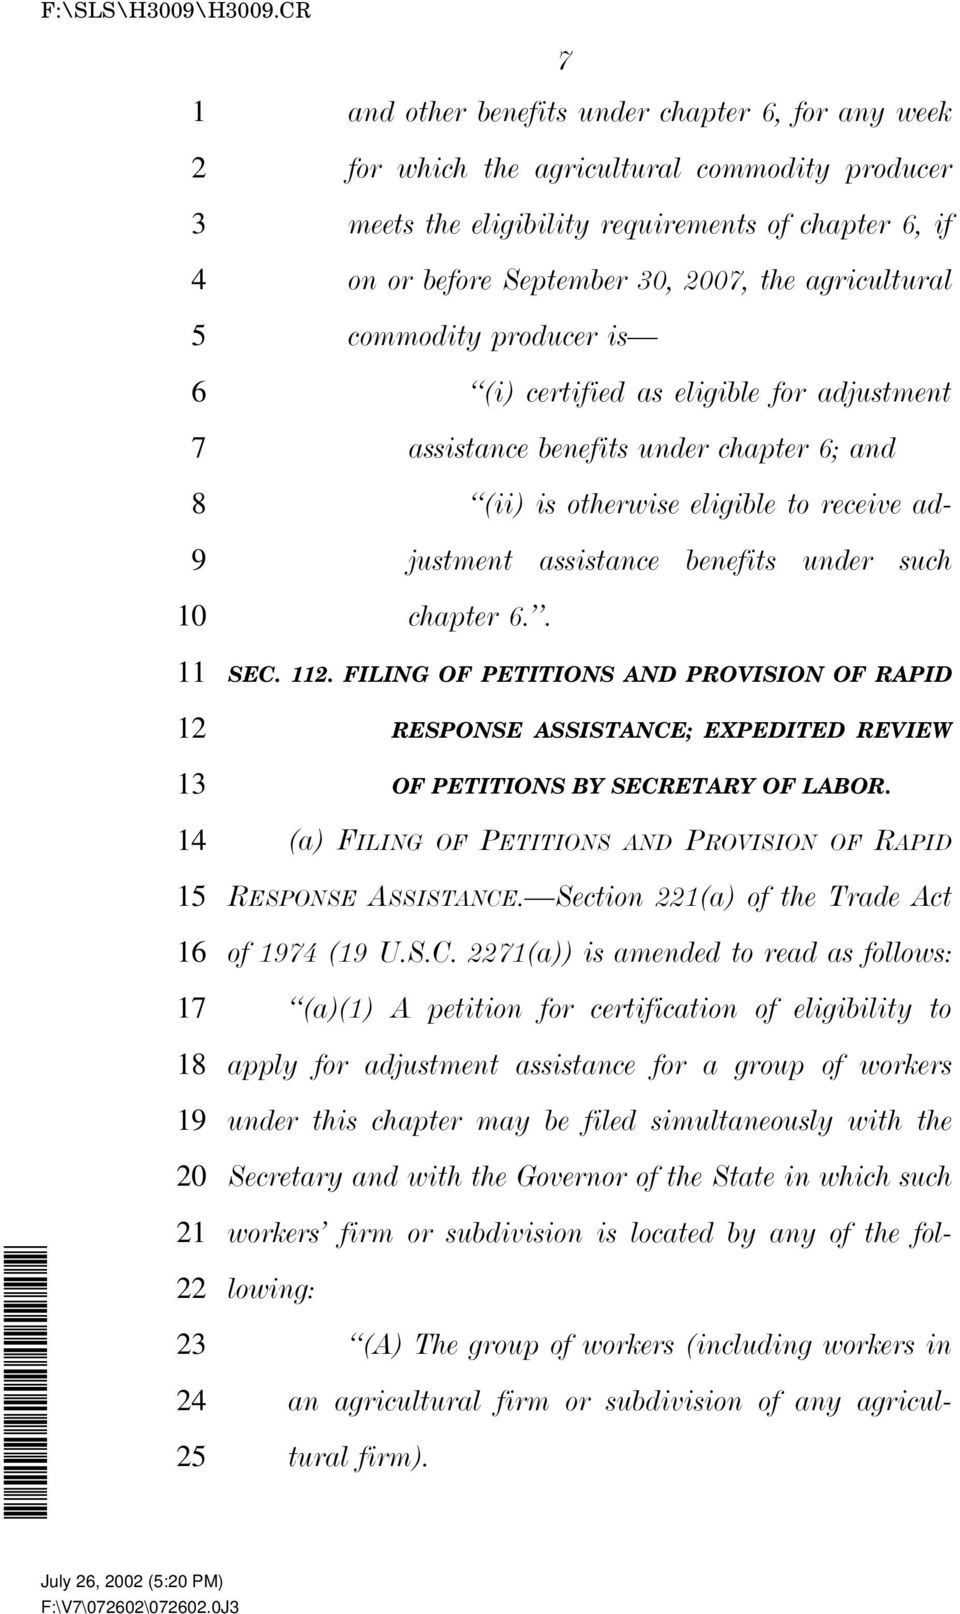 . FILING OF PETITIONS AND PROVISION OF RAPID RESPONSE ASSISTANCE; EXPEDITED REVIEW OF PETITIONS BY SECRETARY OF LABOR. (a) FILING OF PETITIONS AND PROVISION OF RAPID RESPONSE ASSISTANCE.